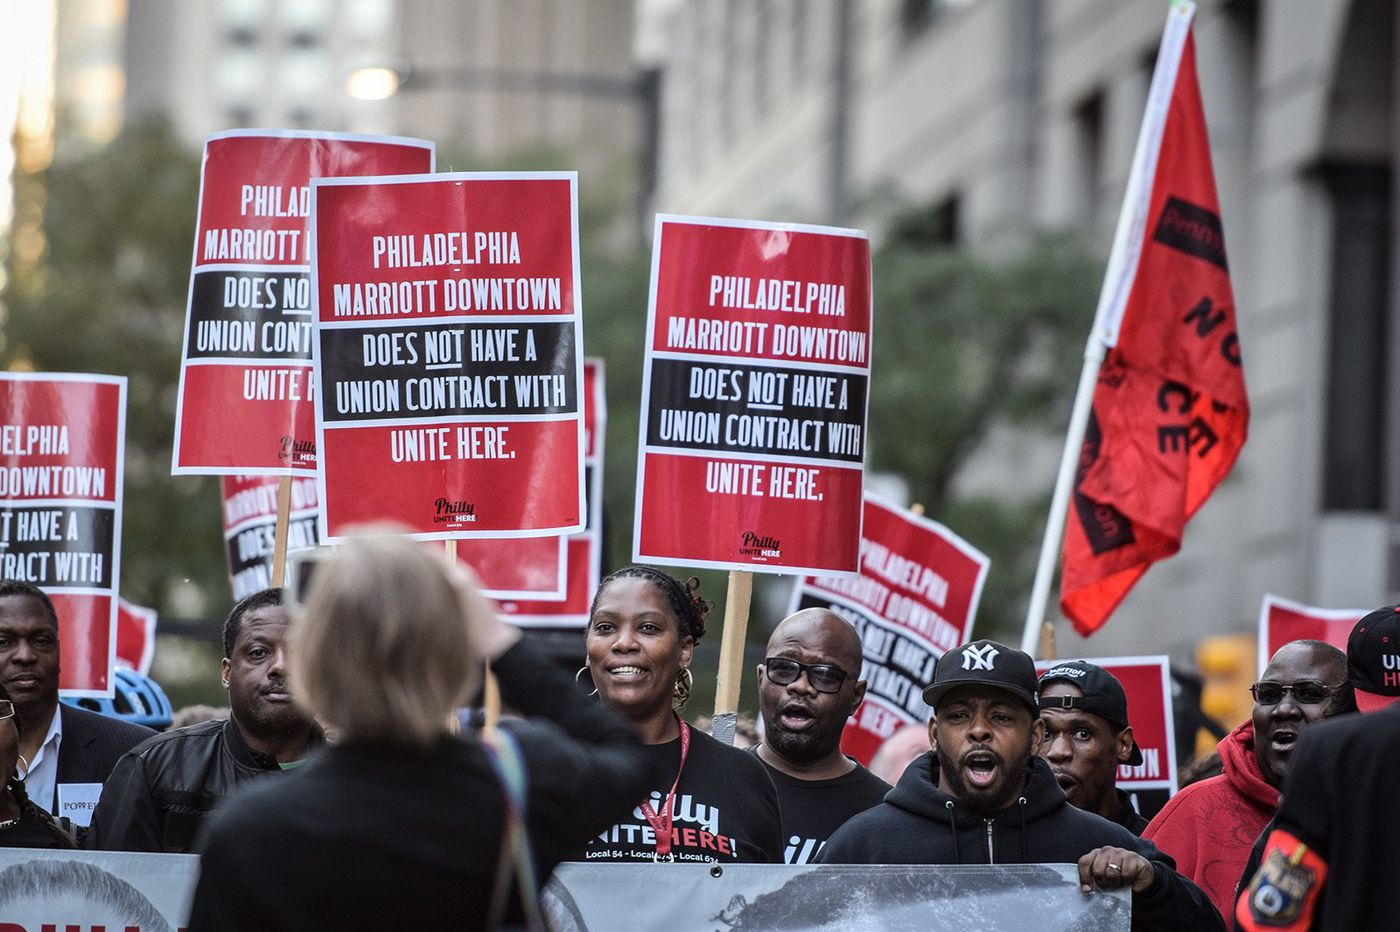 Philadelphia is still very much a labor town. Here's how workers are fighting back.